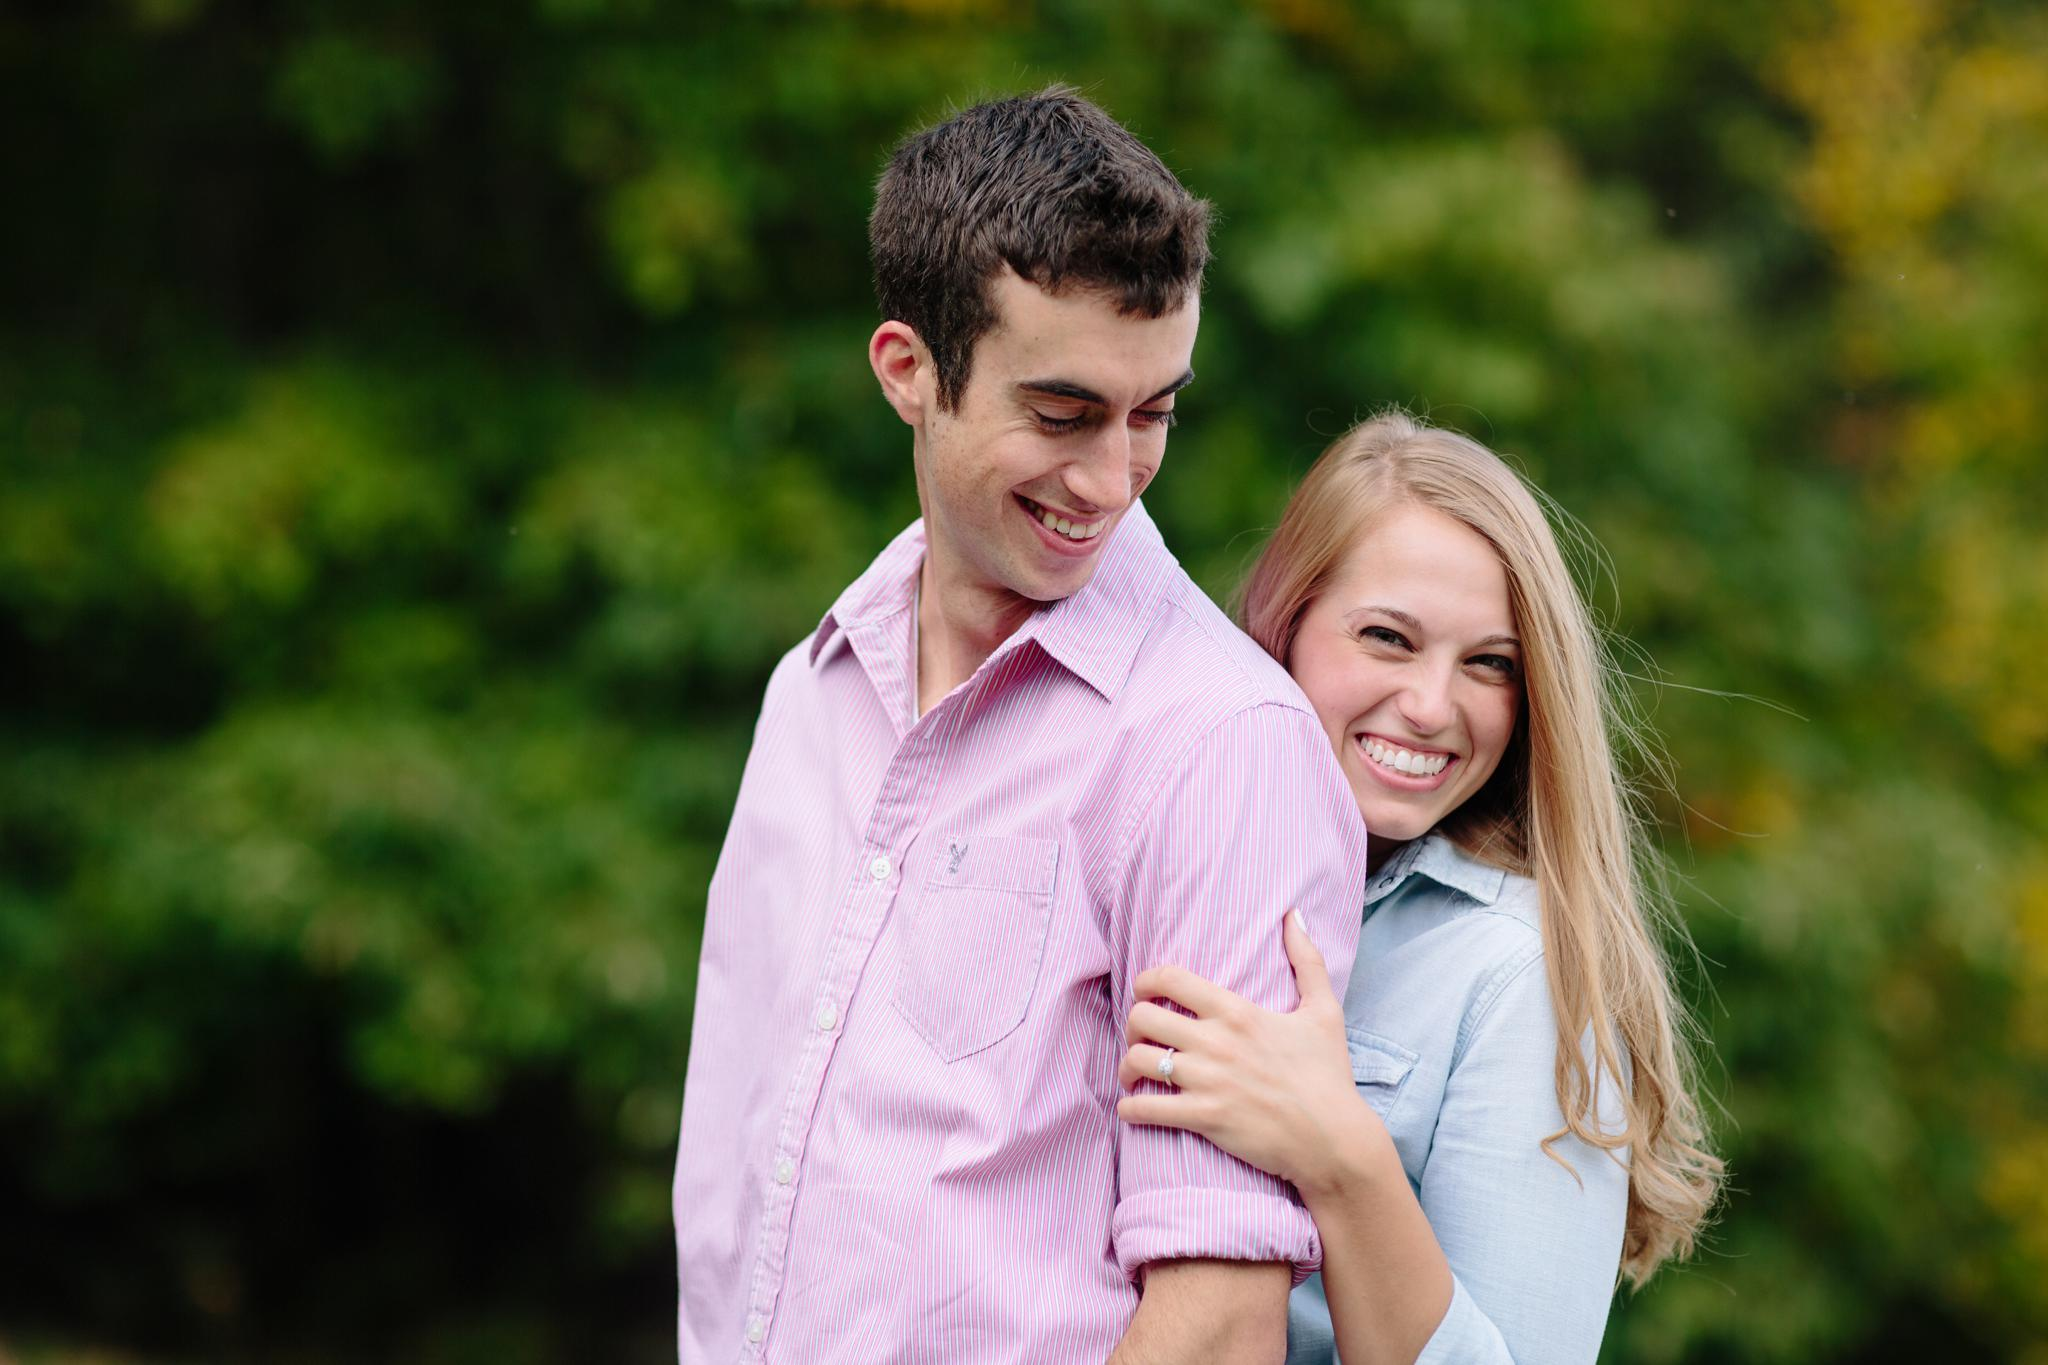 saddle_lake_engagement_session-9.jpg